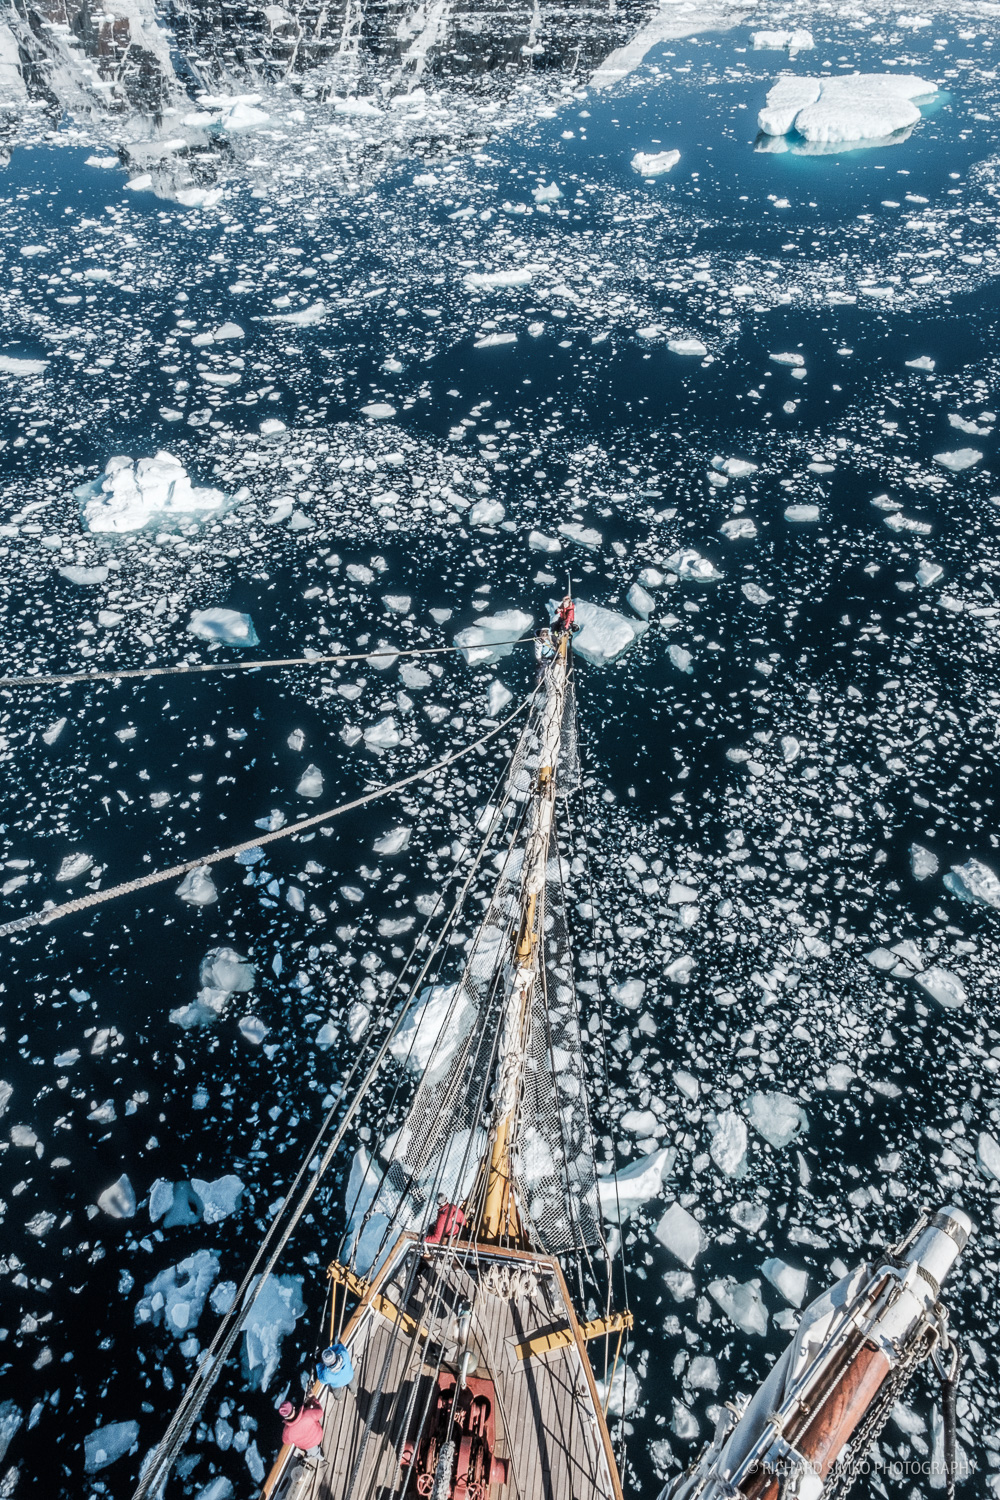 Europa is making her way through sea of ice chunks broken from big glacier during calving activity. wether is beautiful and it is time to go alof or find a spot in bowsprit.